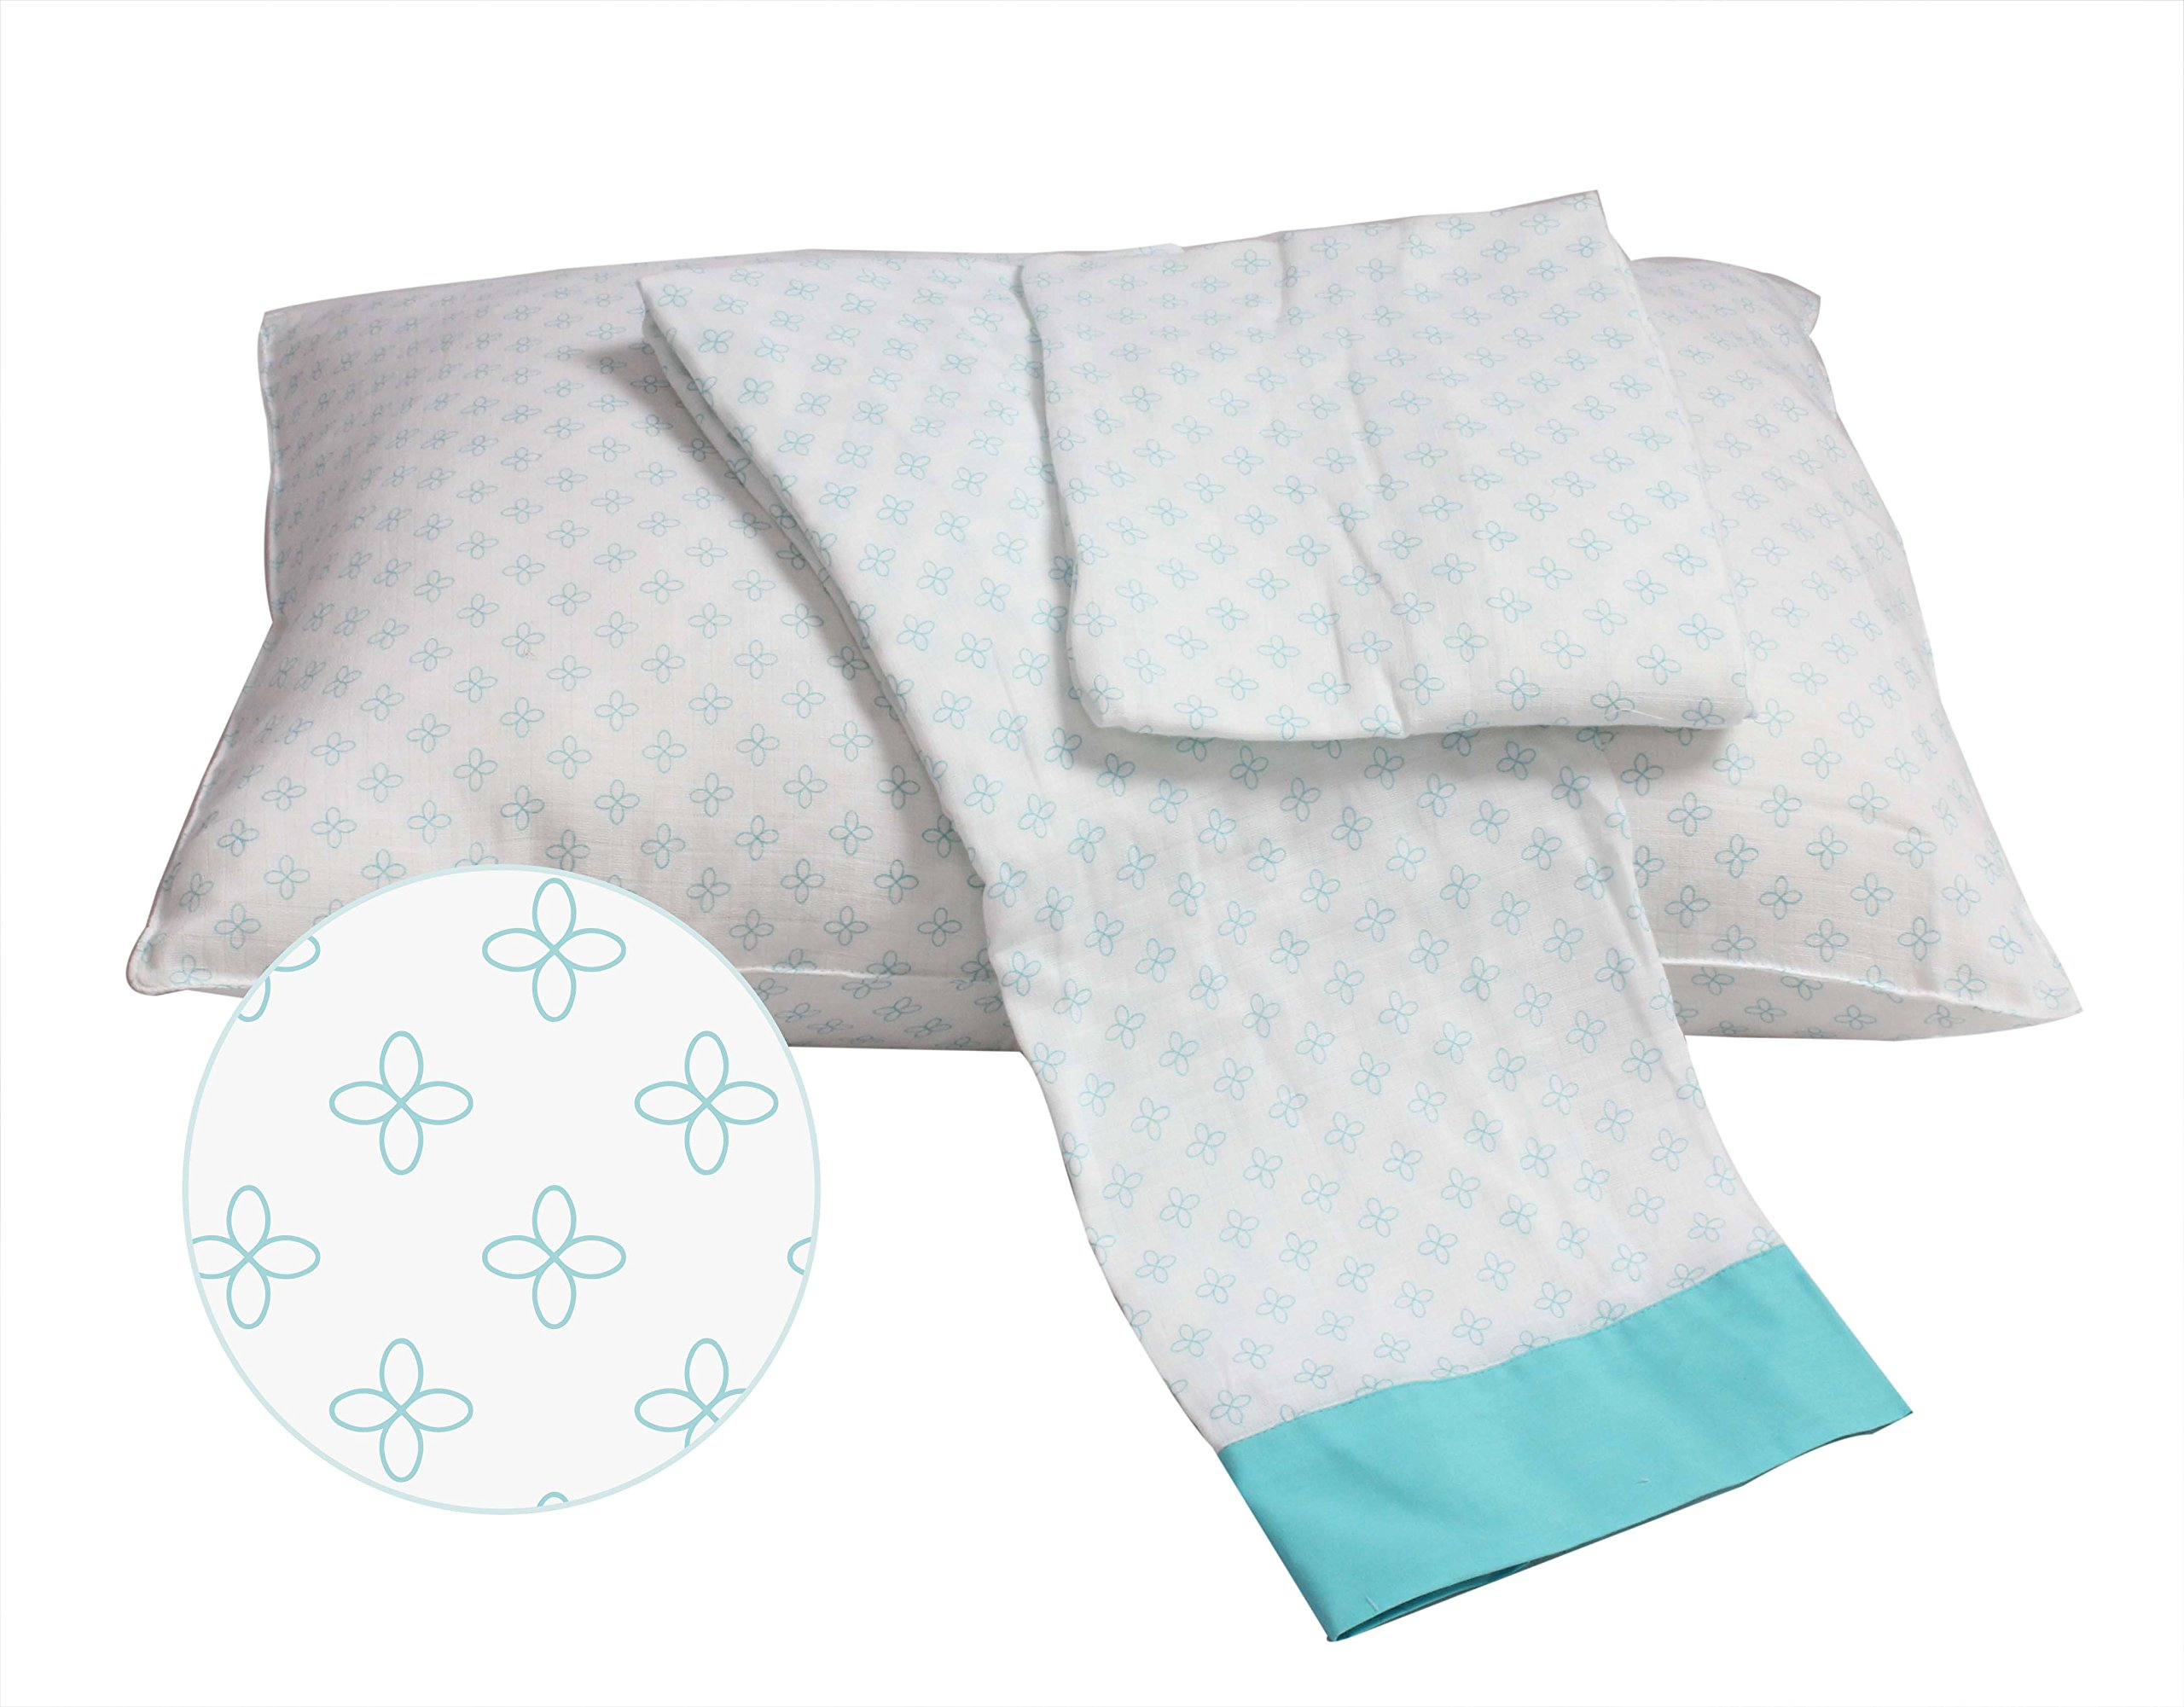 Bacati Petals Muslin 3 Piece Toddler Bedding Sheet Set, Aqua